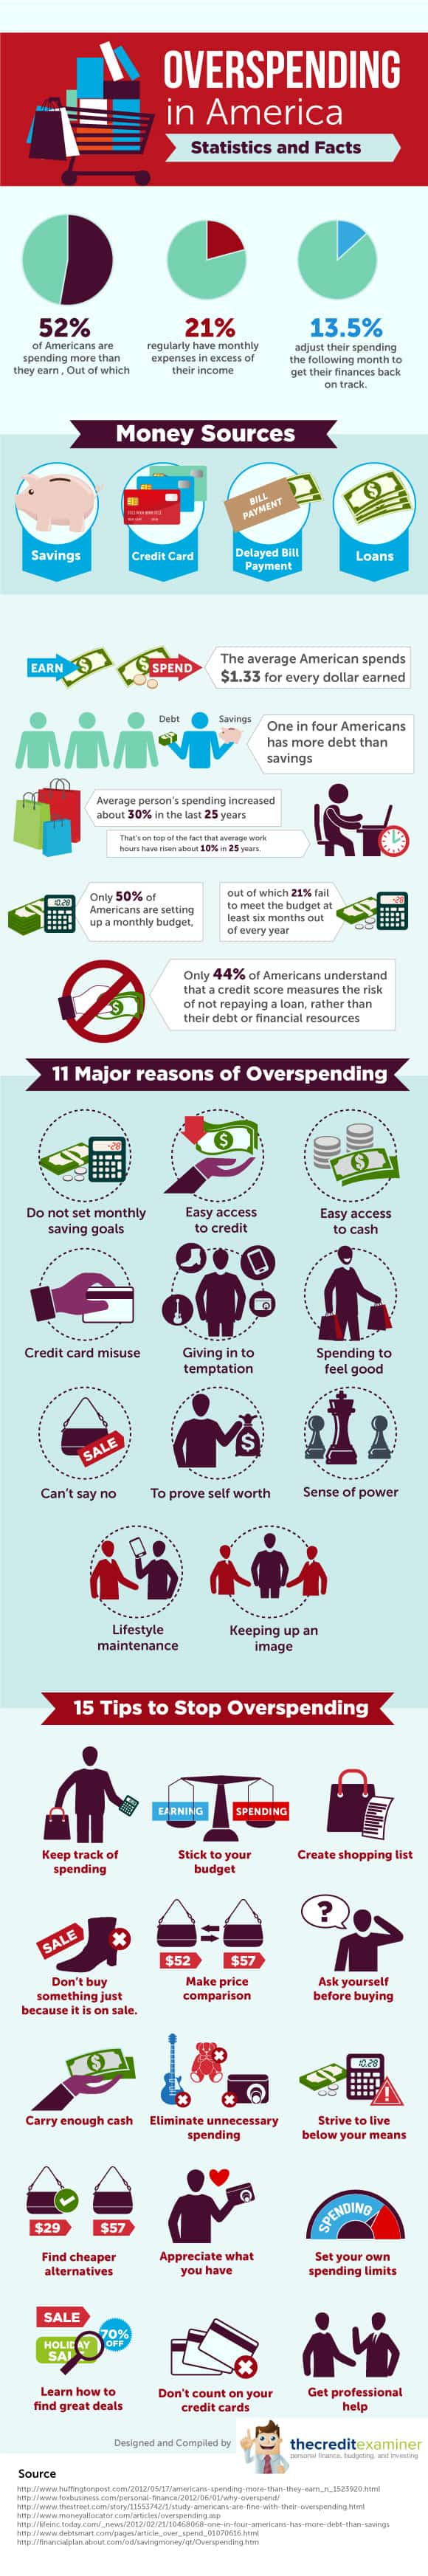 Overspending in America: Statistics and Facts